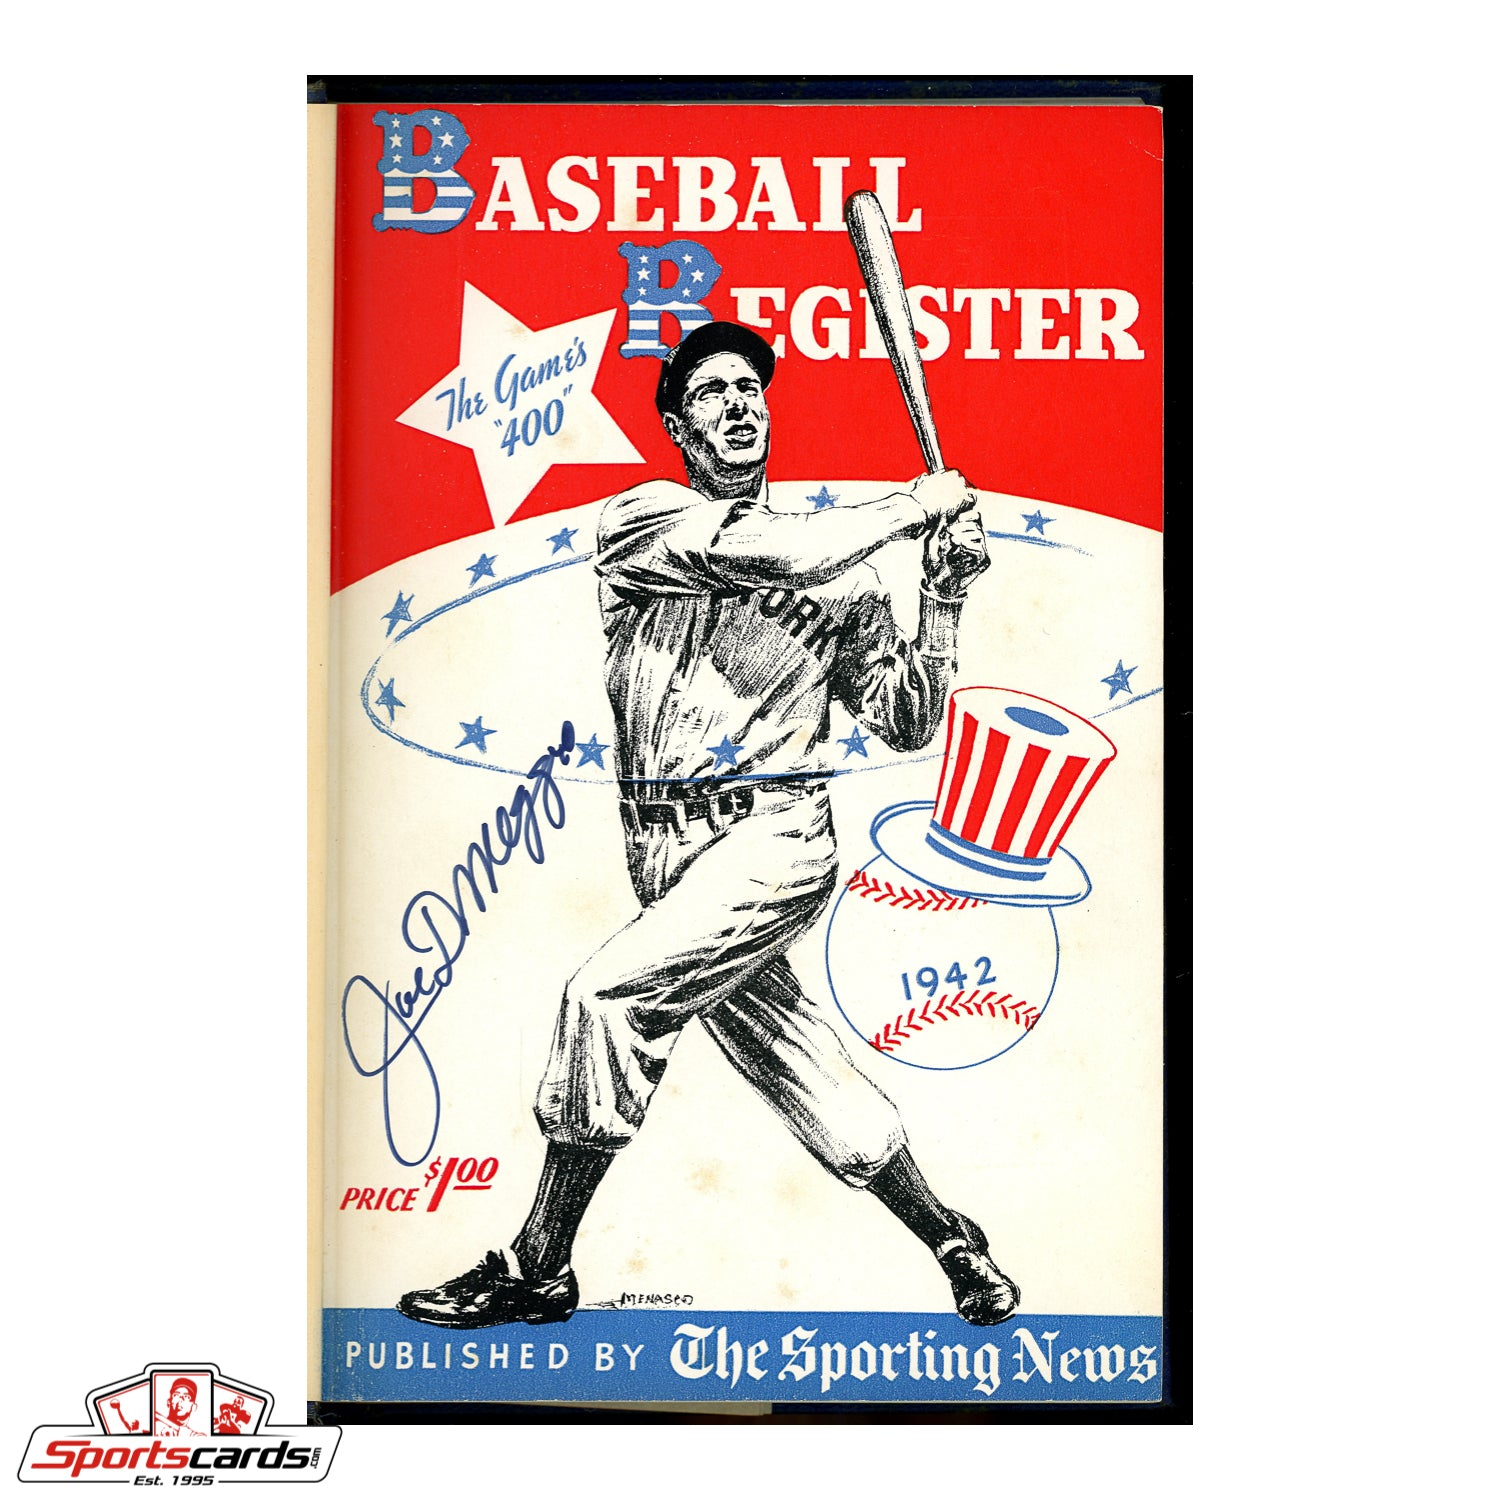 Joe DiMaggio Signed 1942 Sporting News Baseball Register Hardbound Edition - Walter Boom-Boom Beck Personal Copy - BAS LOA